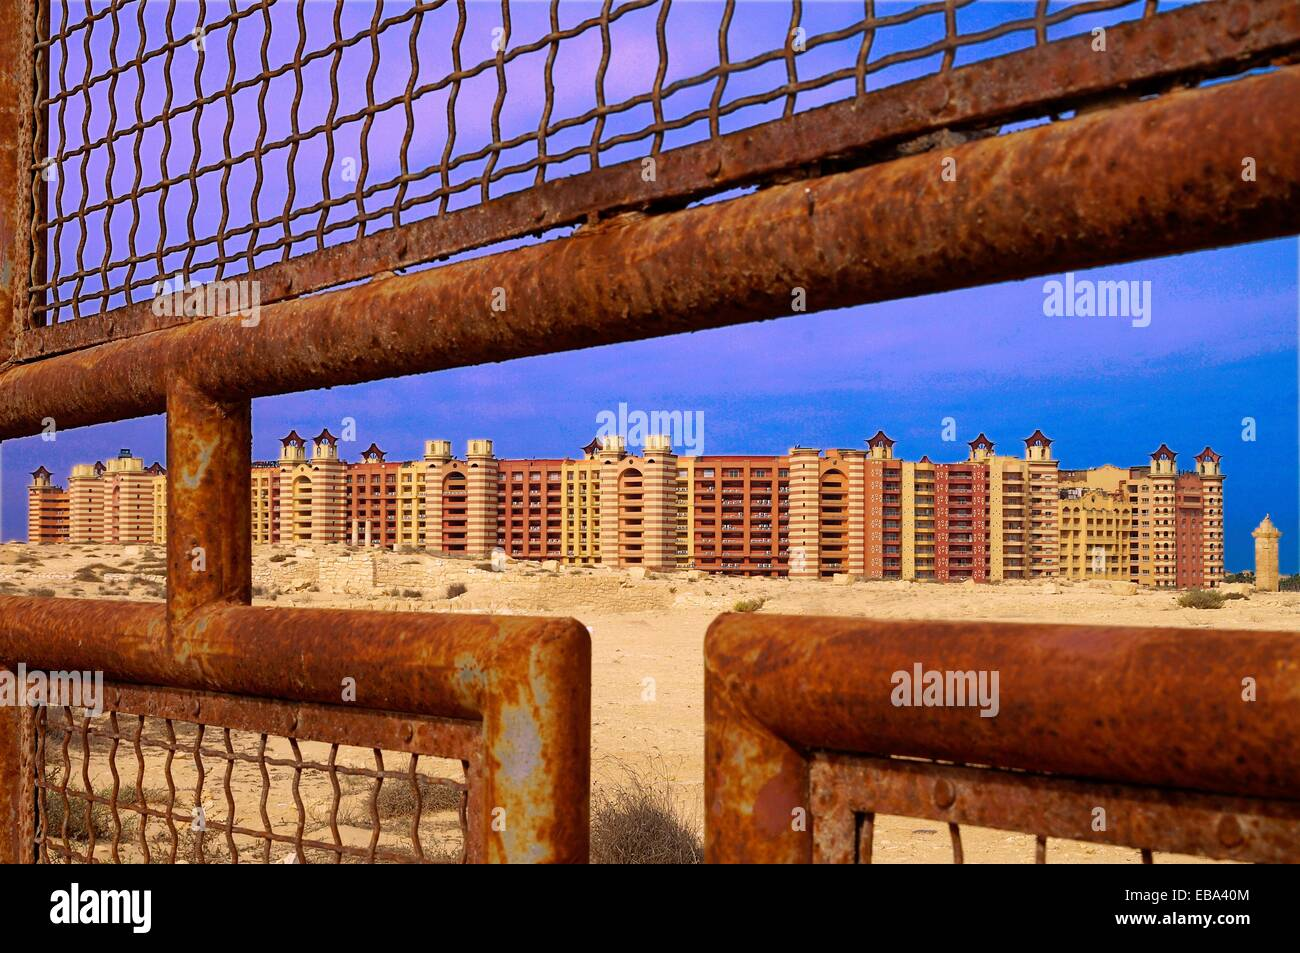 Exclusive beach resort of Marina with romain ruins (4th century) included, El Alamein, Egypt - Stock Image